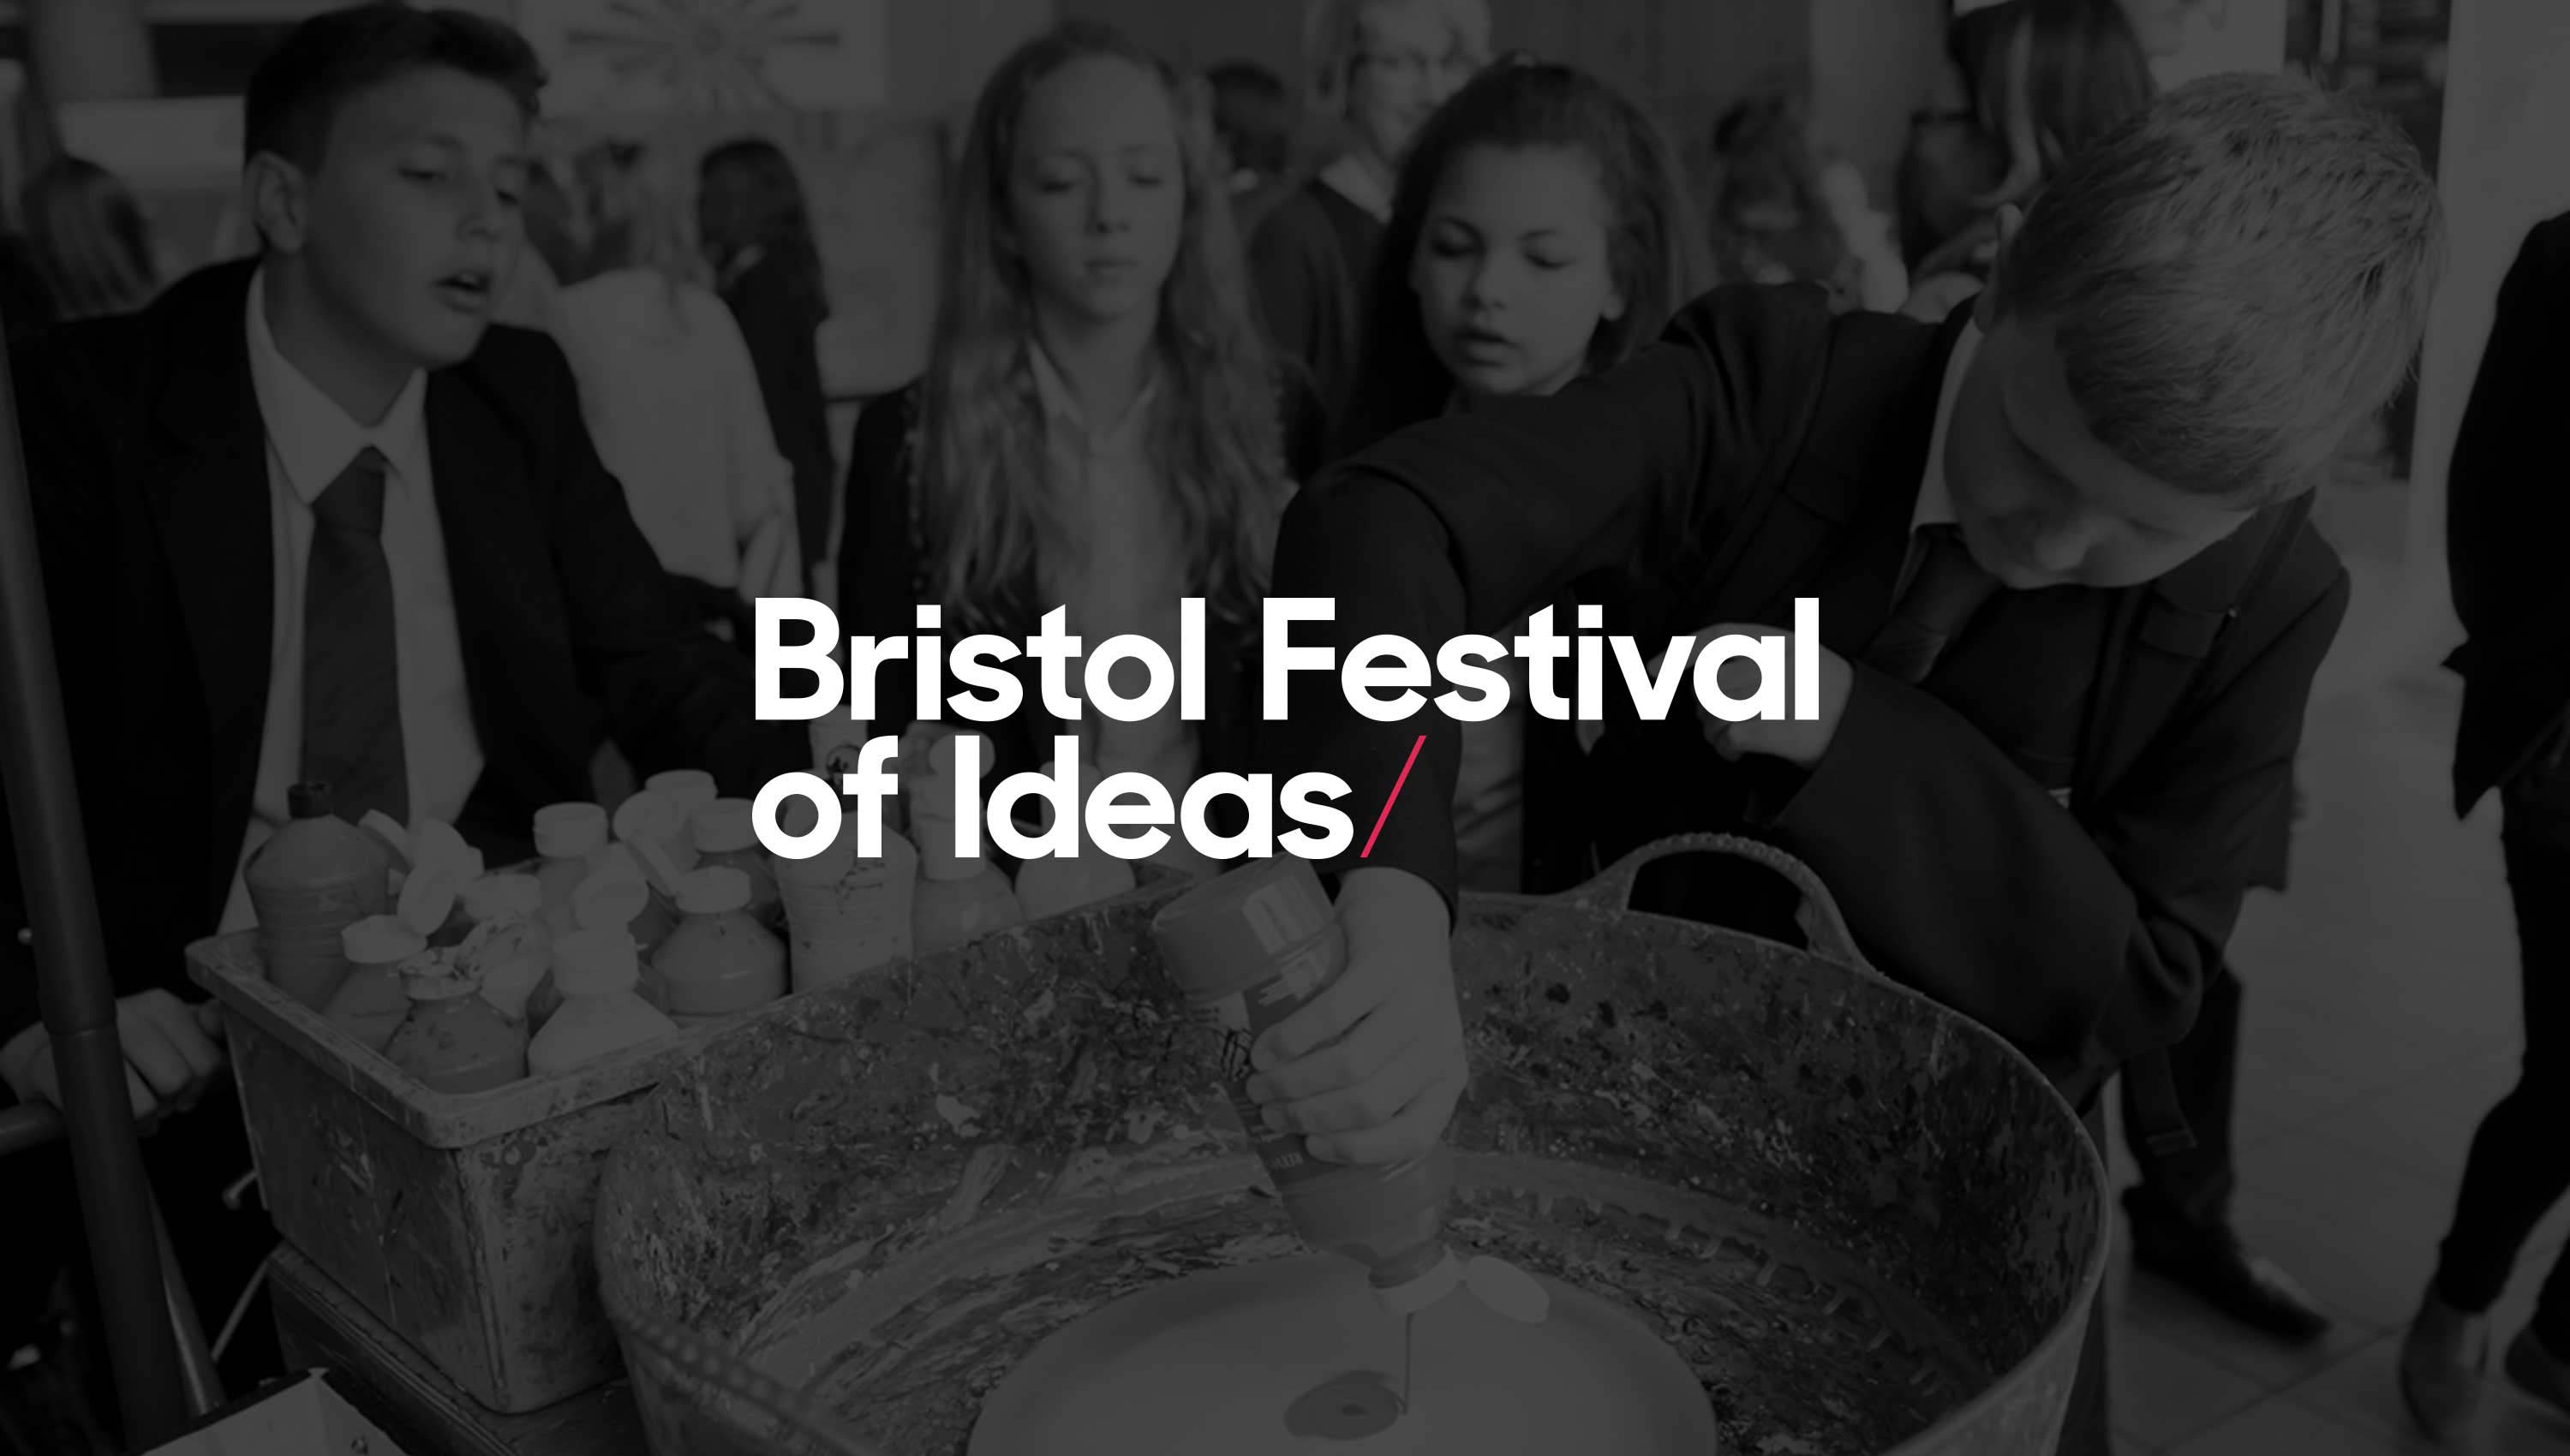 bristol festival of ideas brand design